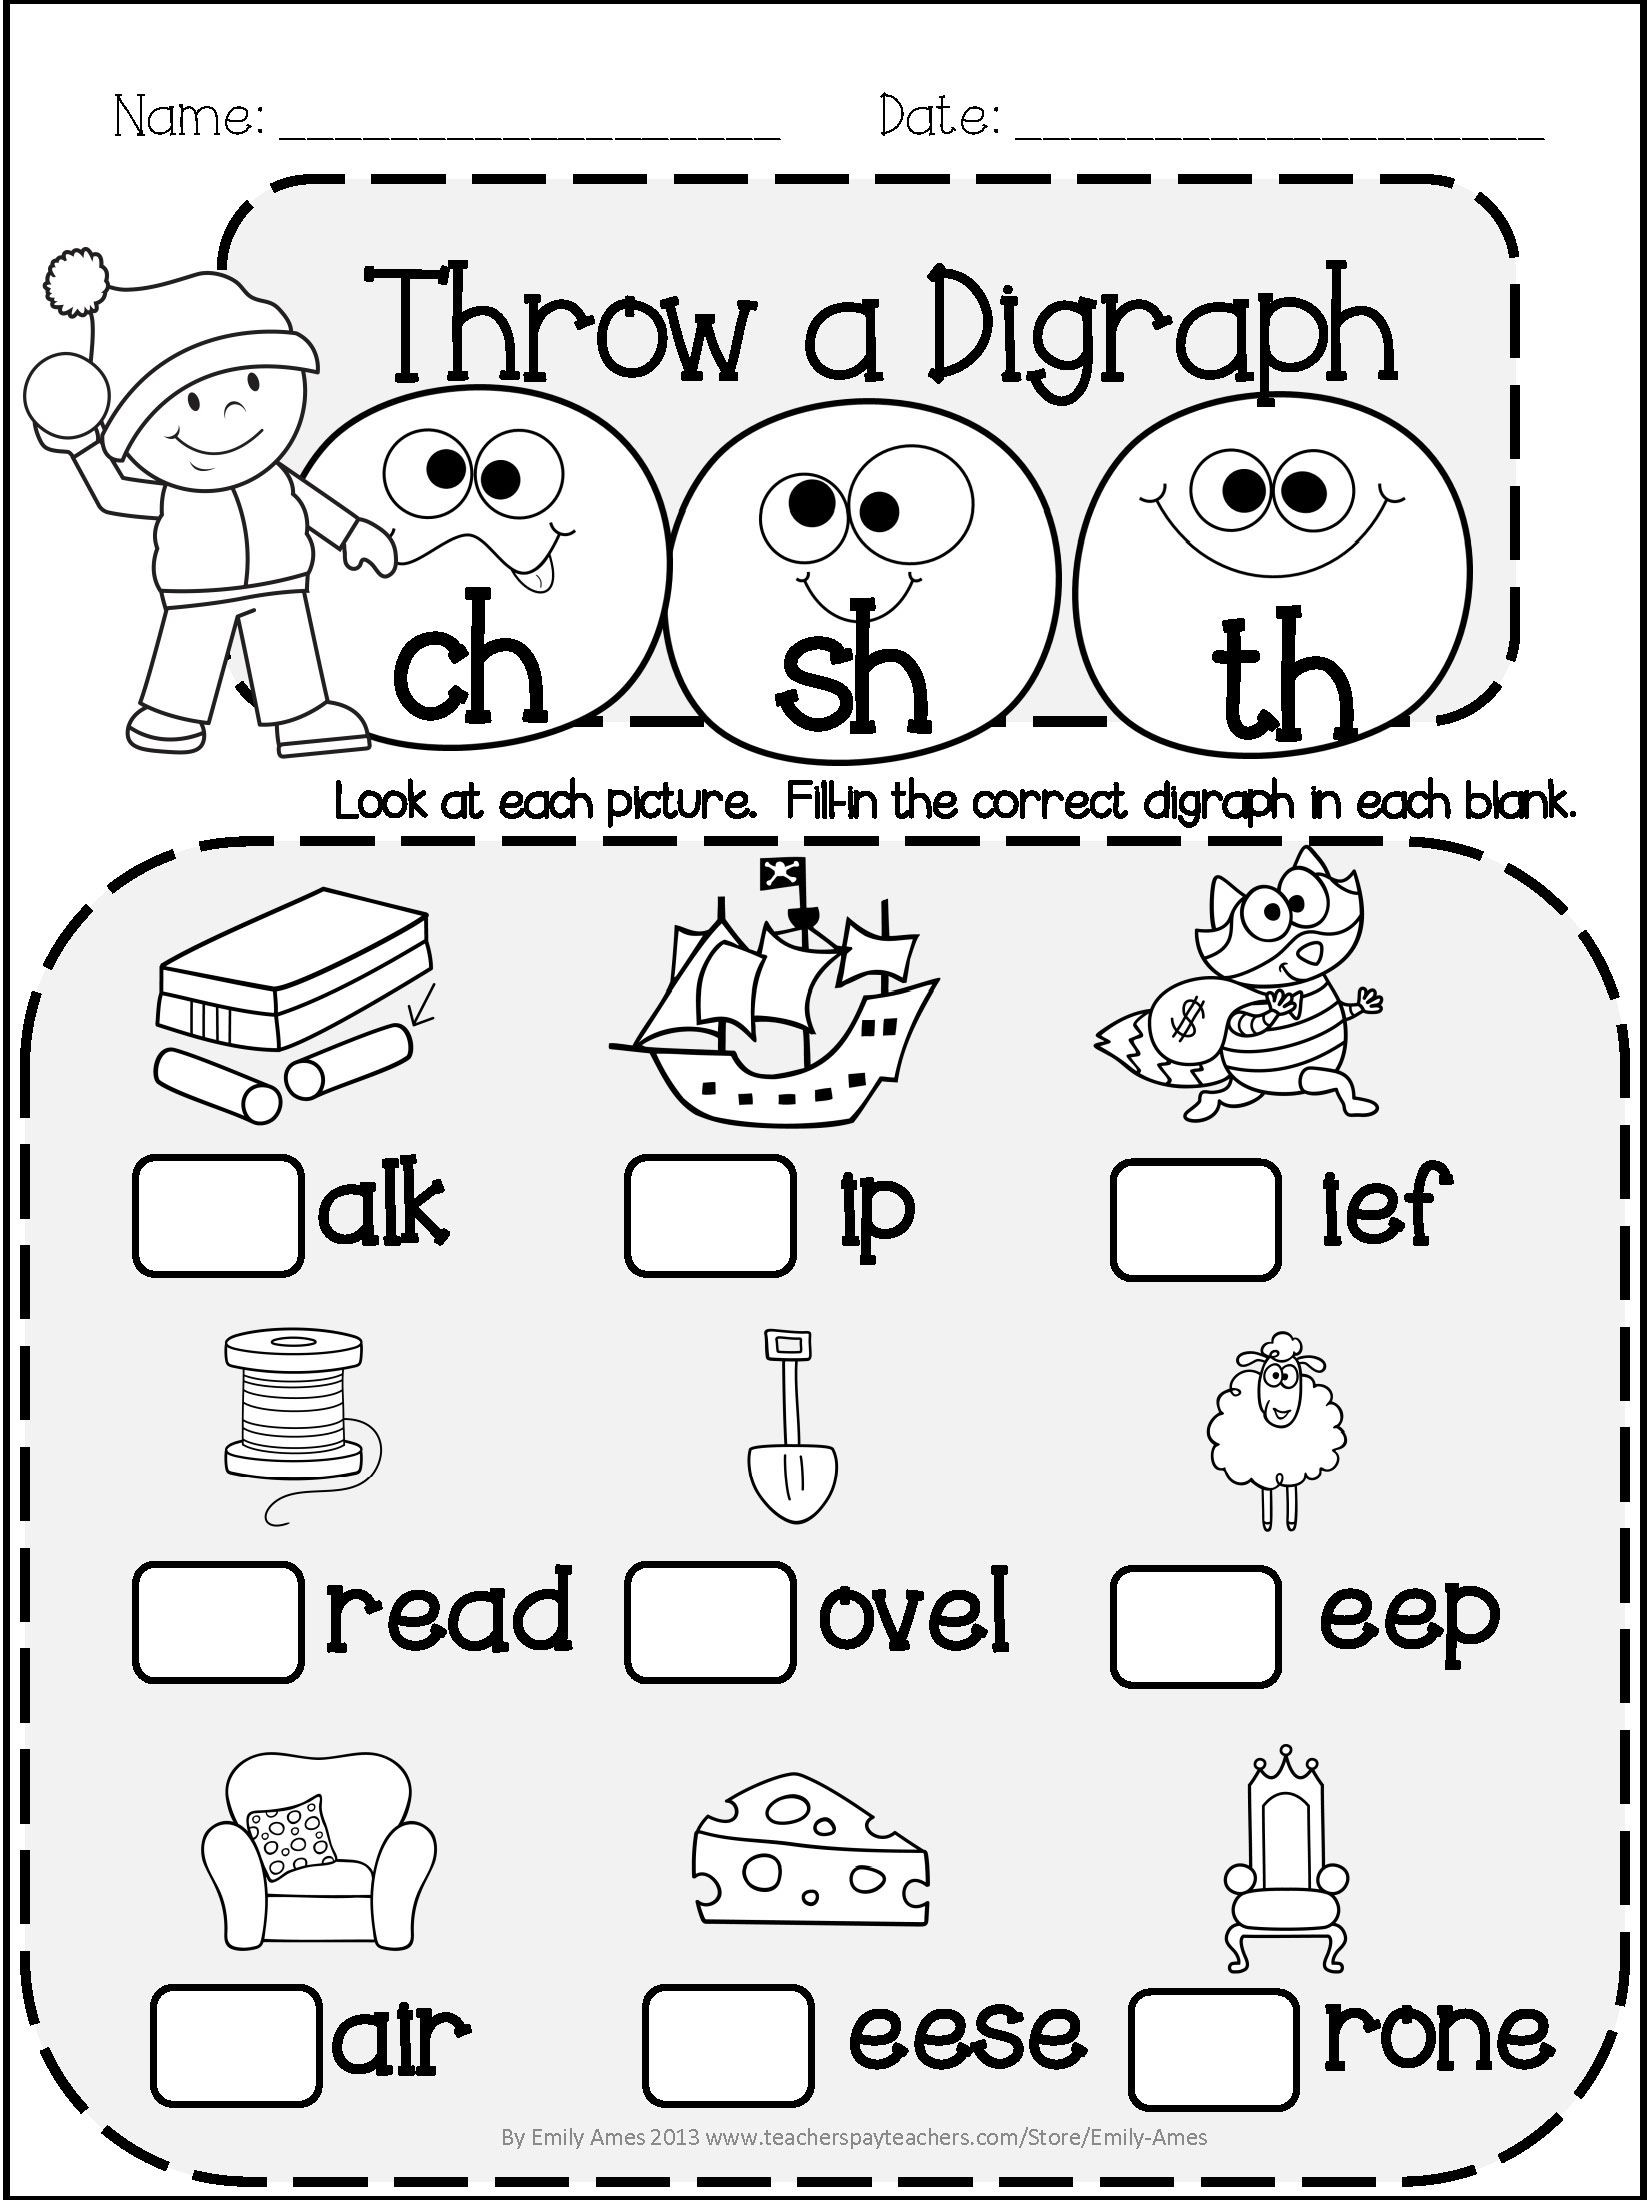 Digraph Worksheets for First Grade Winter Literacy Fun Short & Long Vowels Blends and